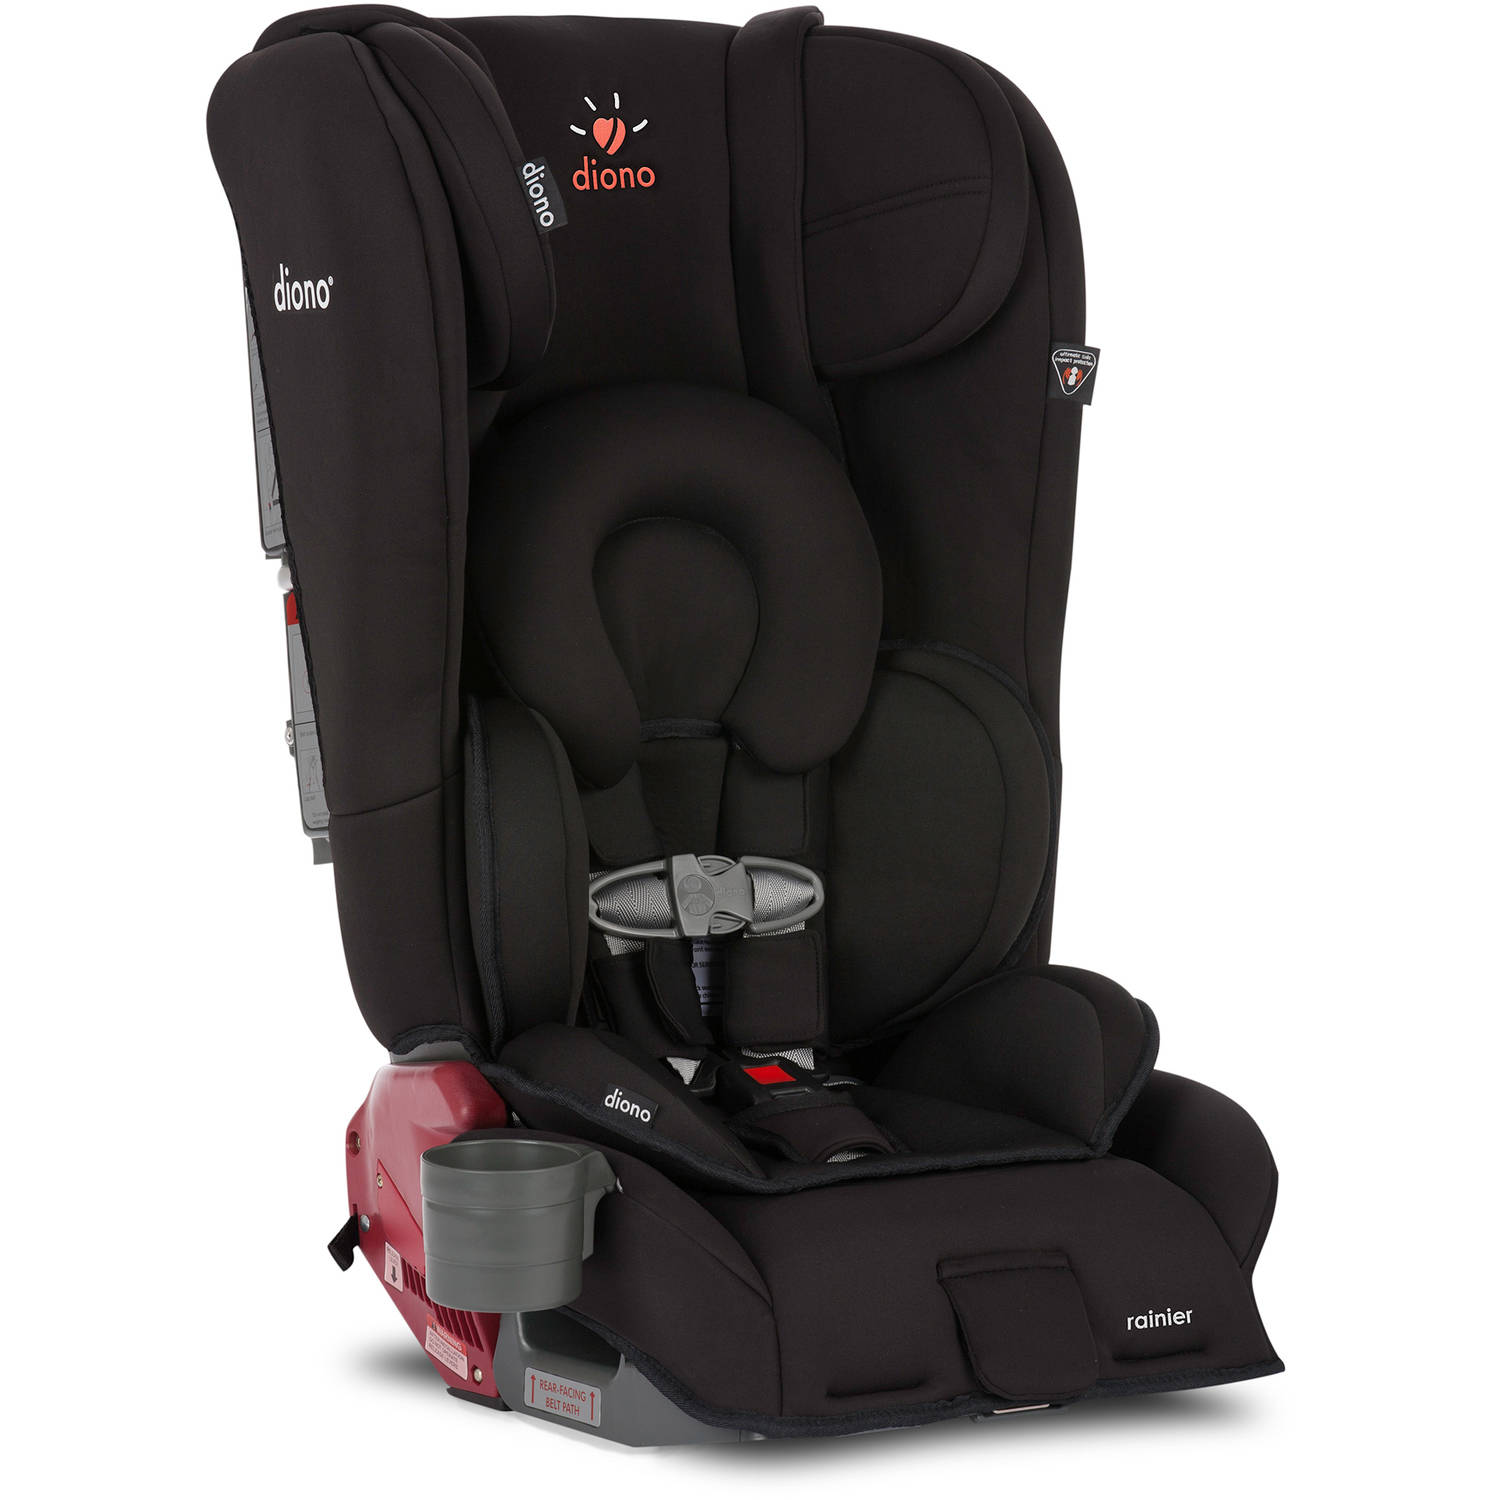 Diono Rainier Convertible Car Seat and Booster, Midnight